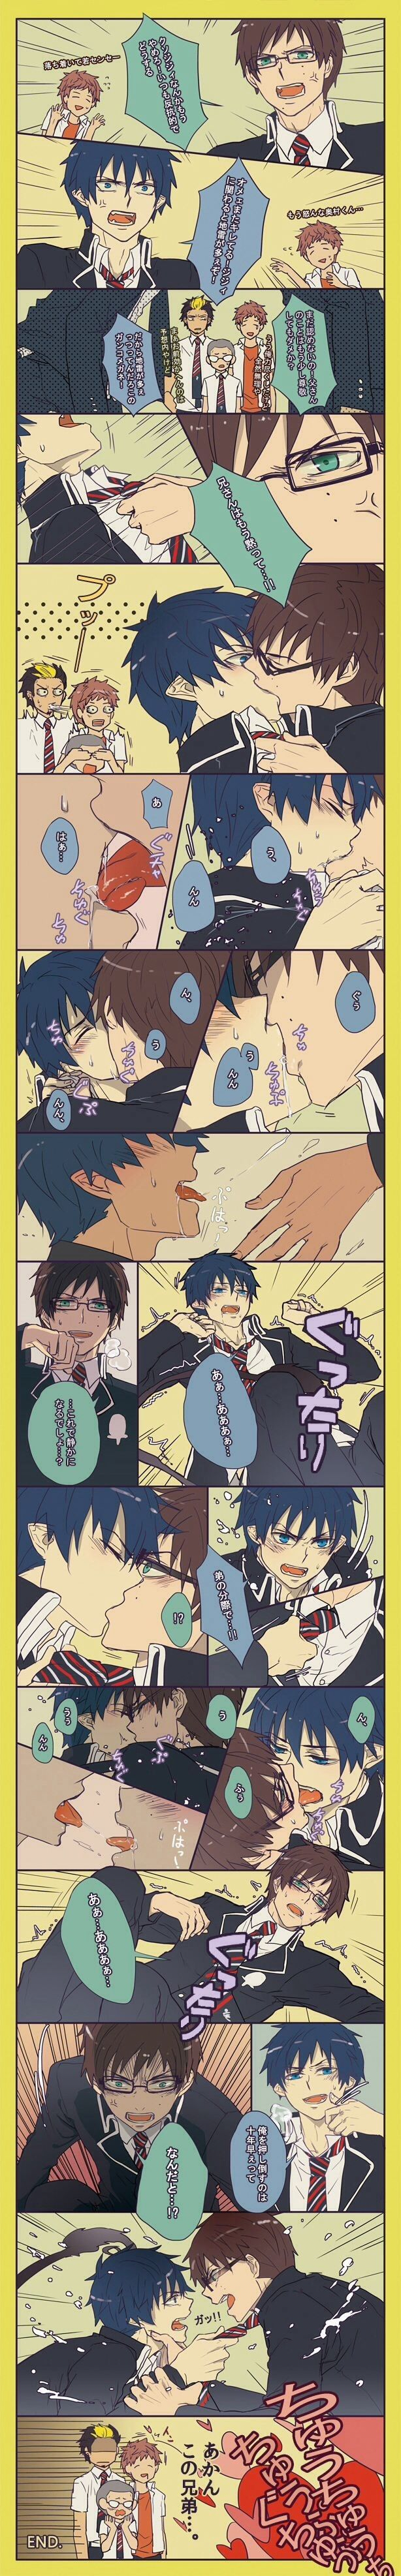 Yukio||Rin ----- 0-0 I don't ship... but I think this is funny. Lol.